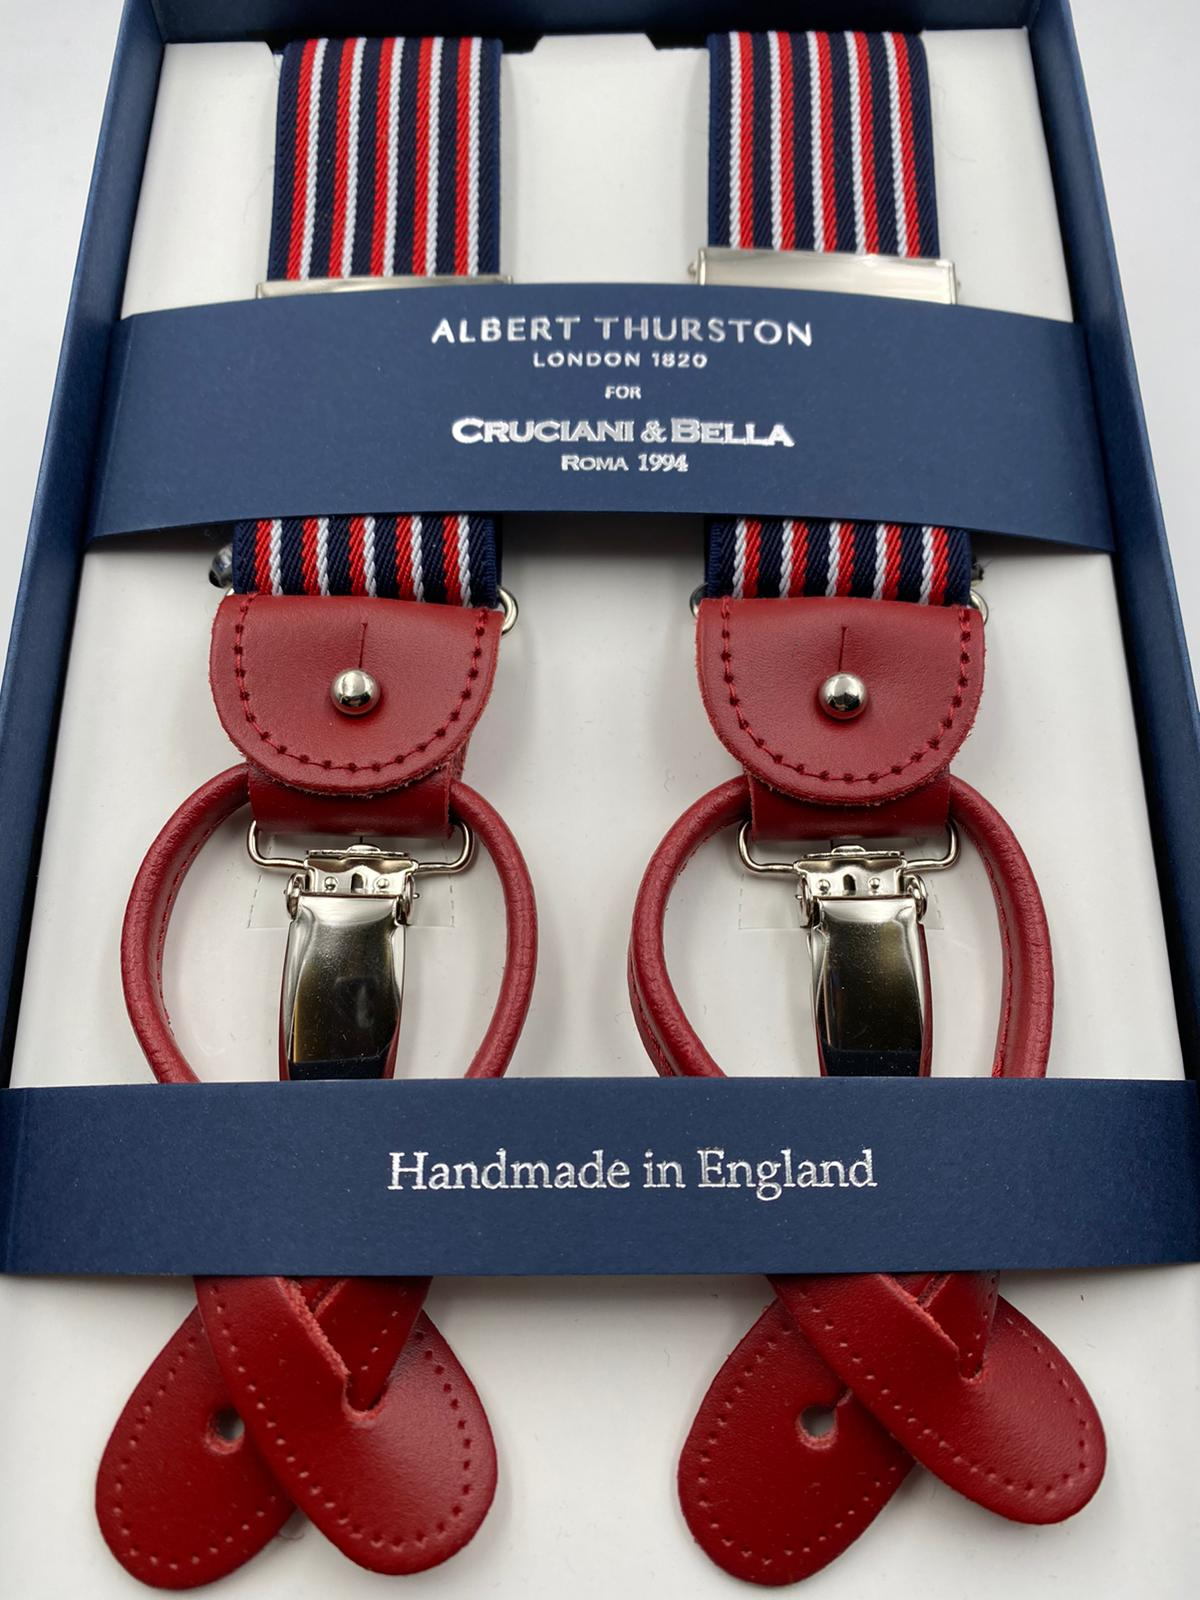 Albert Thurston for Cruciani & Bella Made in England 2 in 1 Adjustable Sizing 35 mm elastic braces Navy Blue, White and Red Stripes Y-Shaped Nickel Fittings #4867